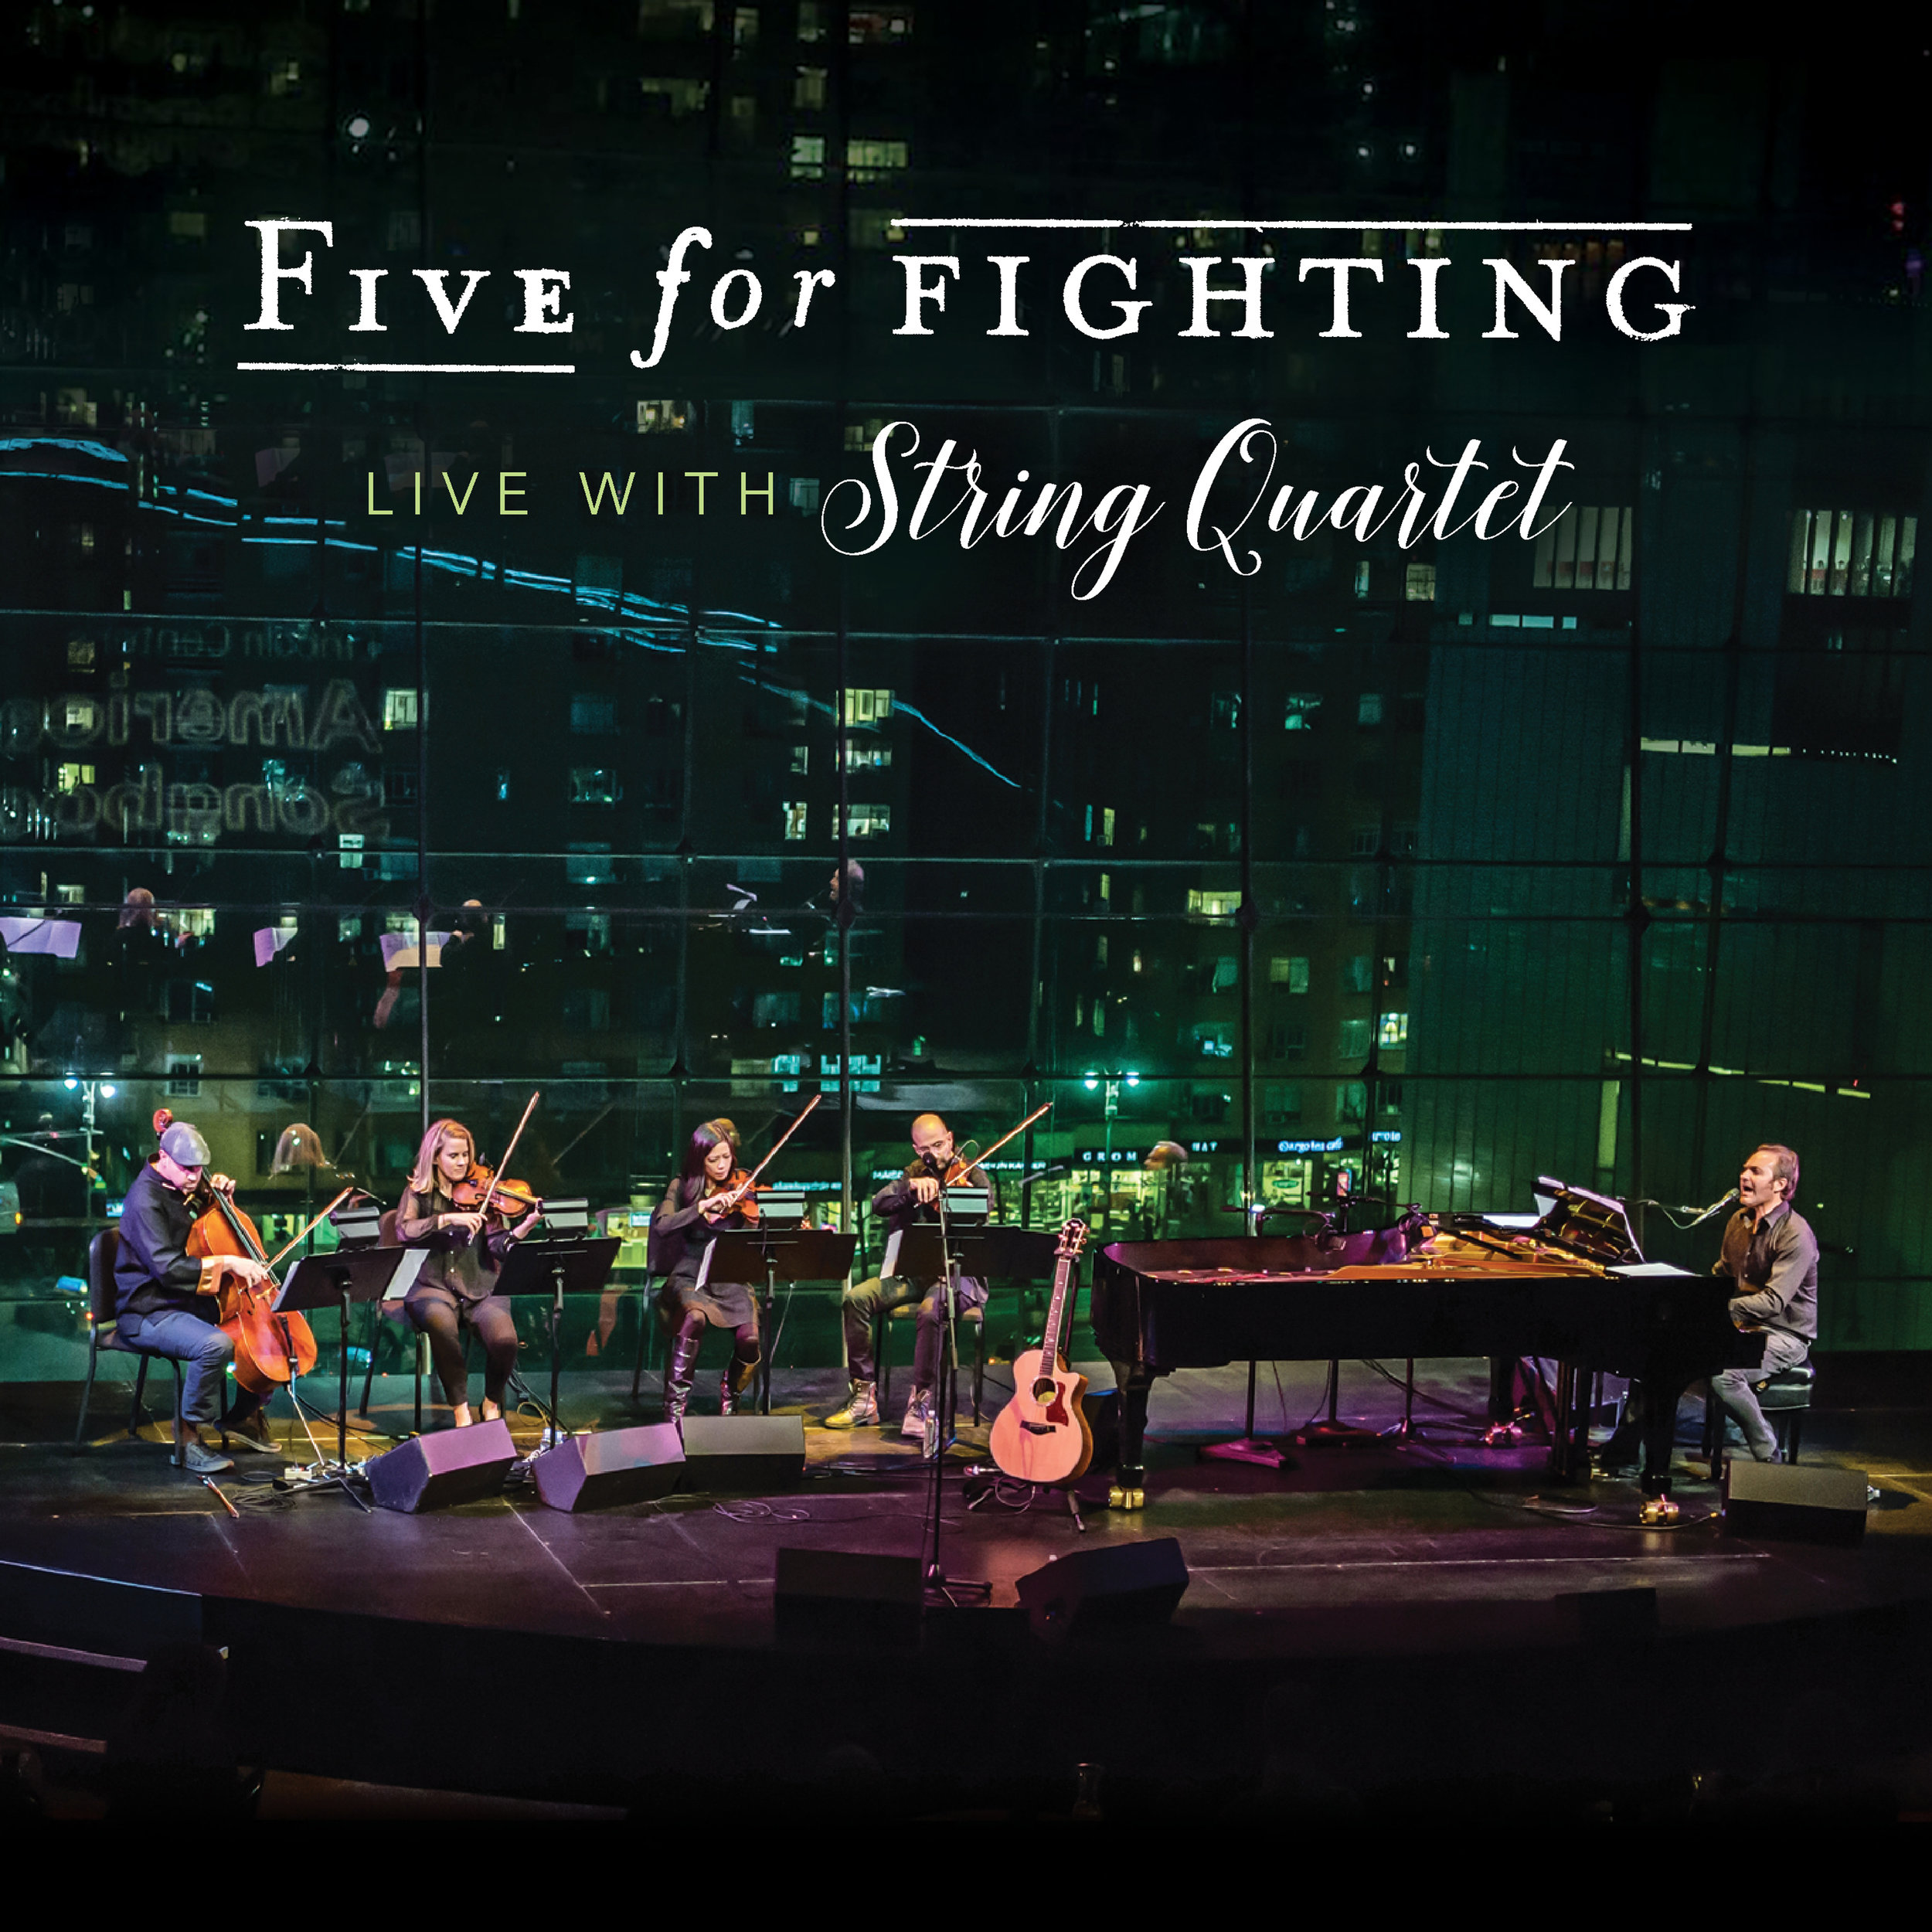 """Five For Fighting - Together with the Five For Fighting string quartet John Ondrasik will be on tour playing a series of unique and intimate dates. We caught him to discuss the new record, tour and recording process. The new album will be exclusively available to those attending the shows until its release later this fall. Five For Fighting will be playing the hits, such as """"Superman"""" and """"100 Years"""" along with fan favorites,"""